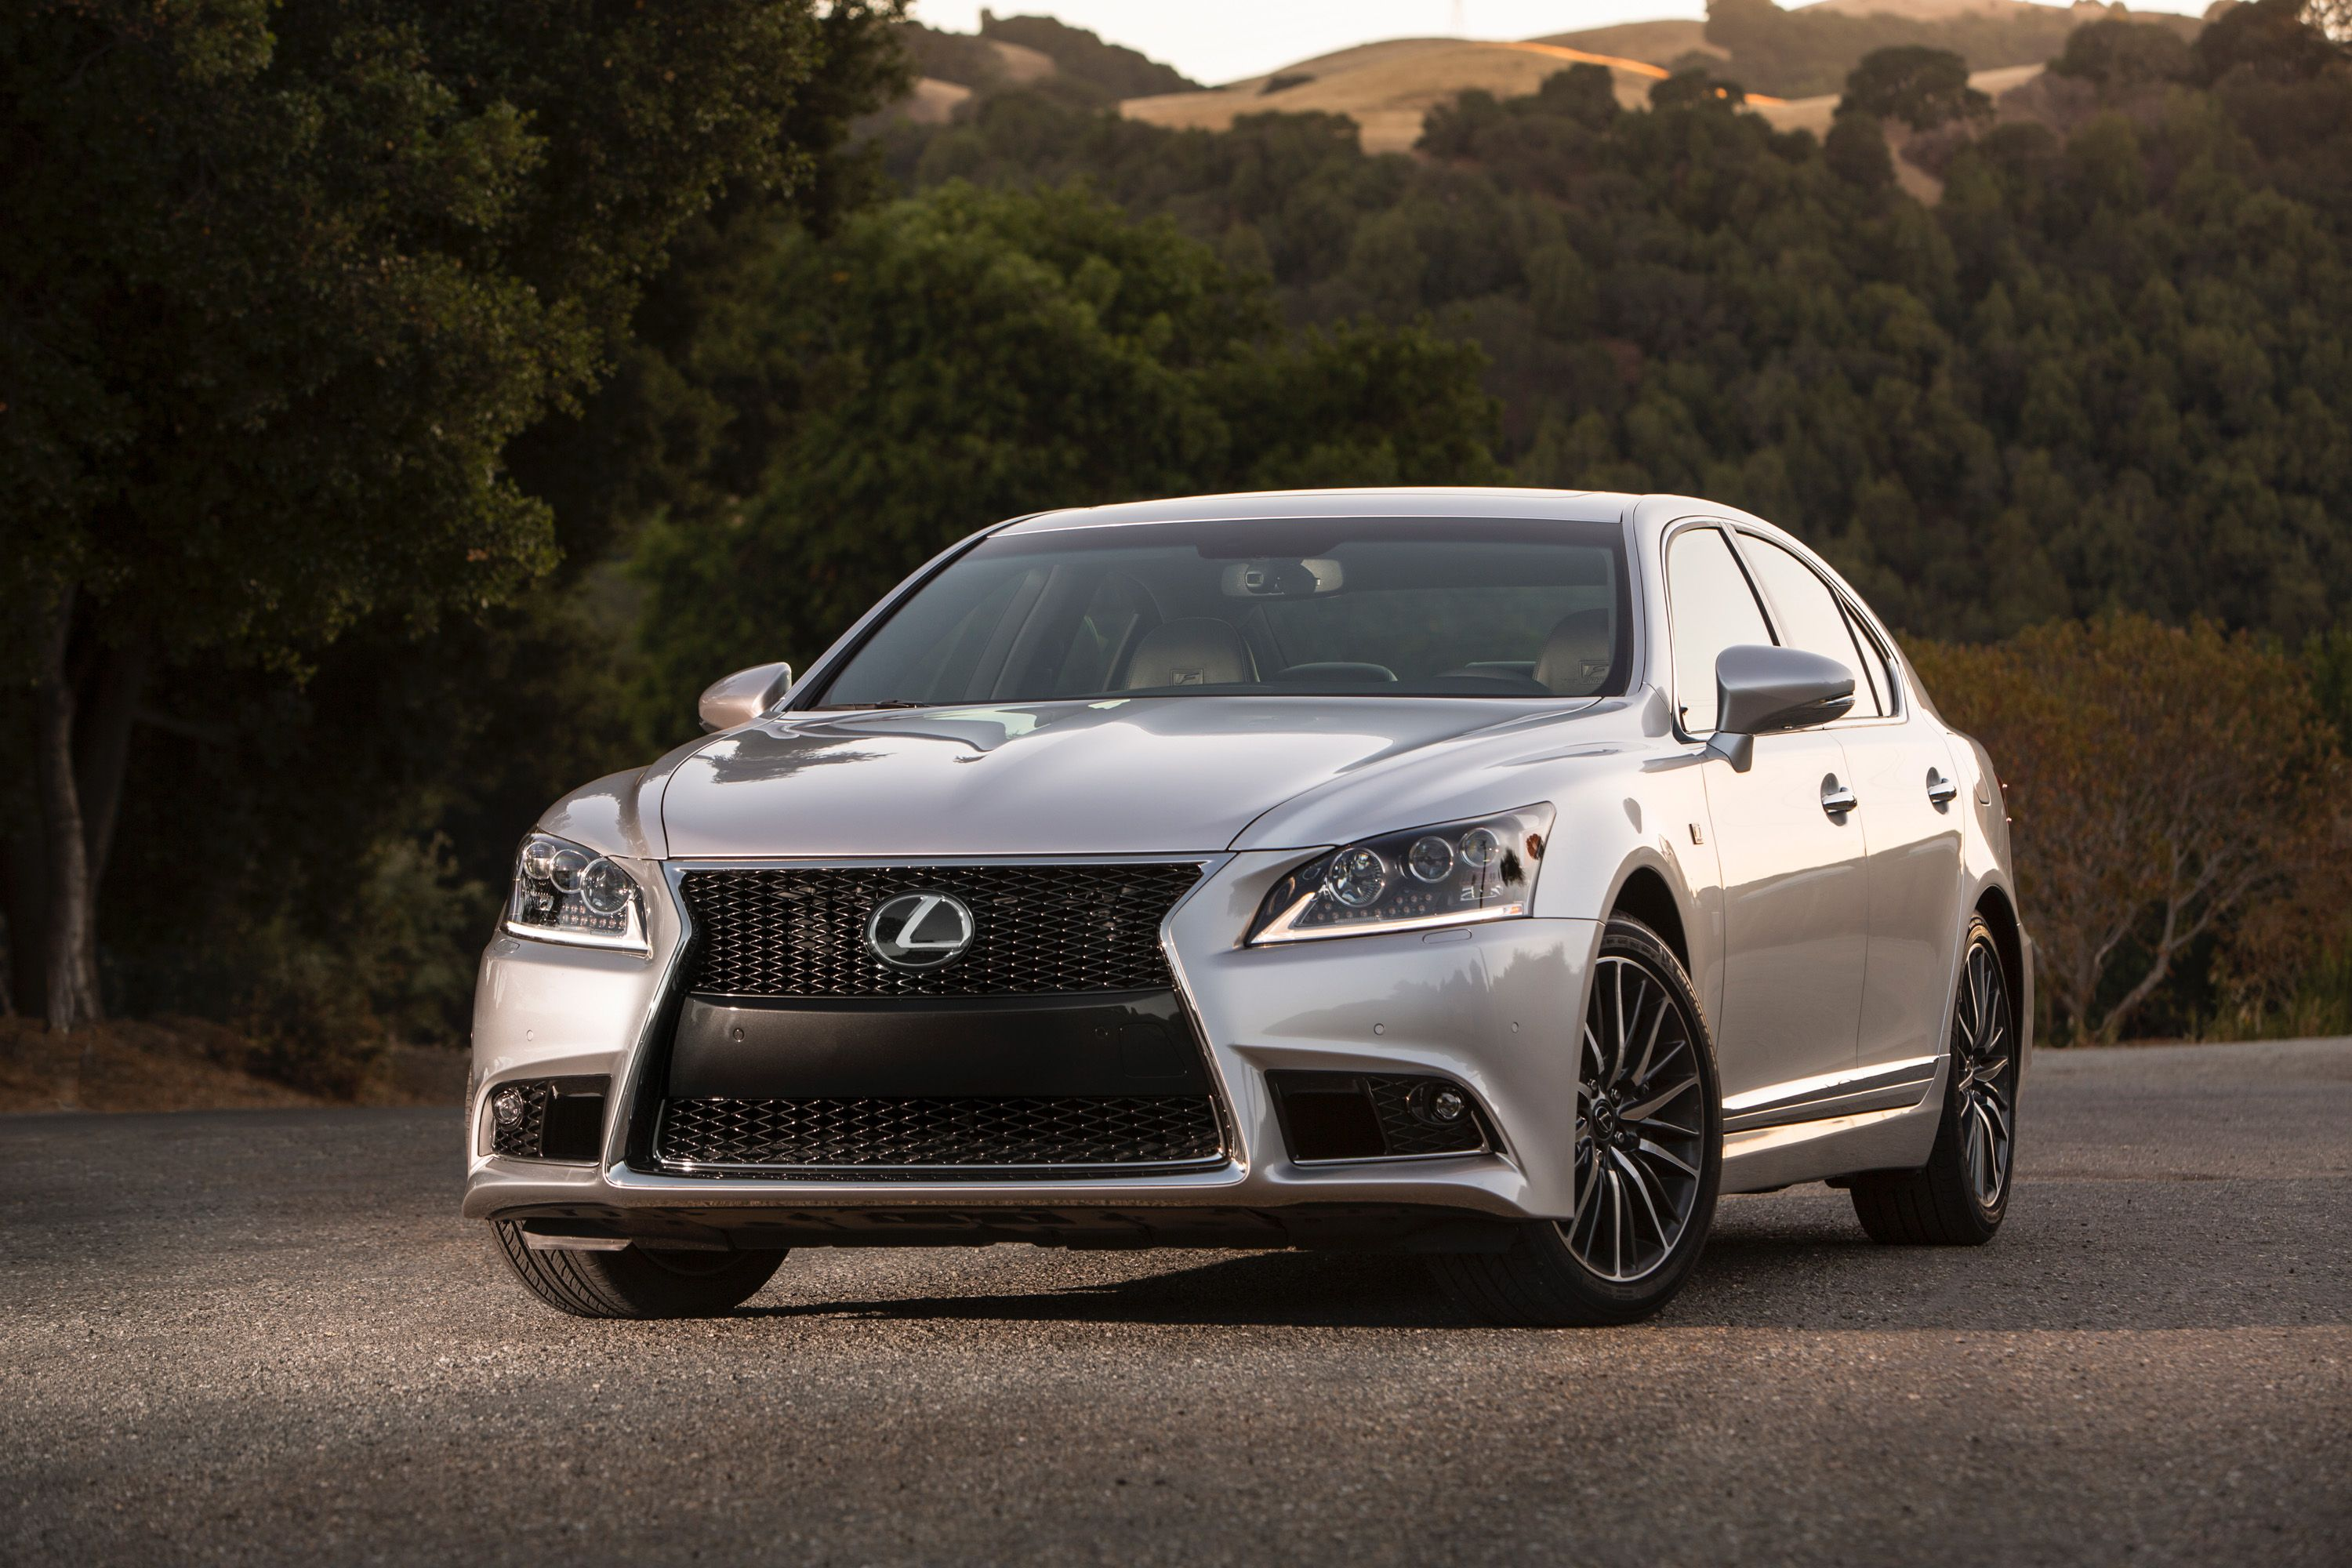 Lexus ls 460 f sport 2013 come with its dynamic handling daring new design and superior craftsmanship the 2013 ls flagship fashions hail the long run of